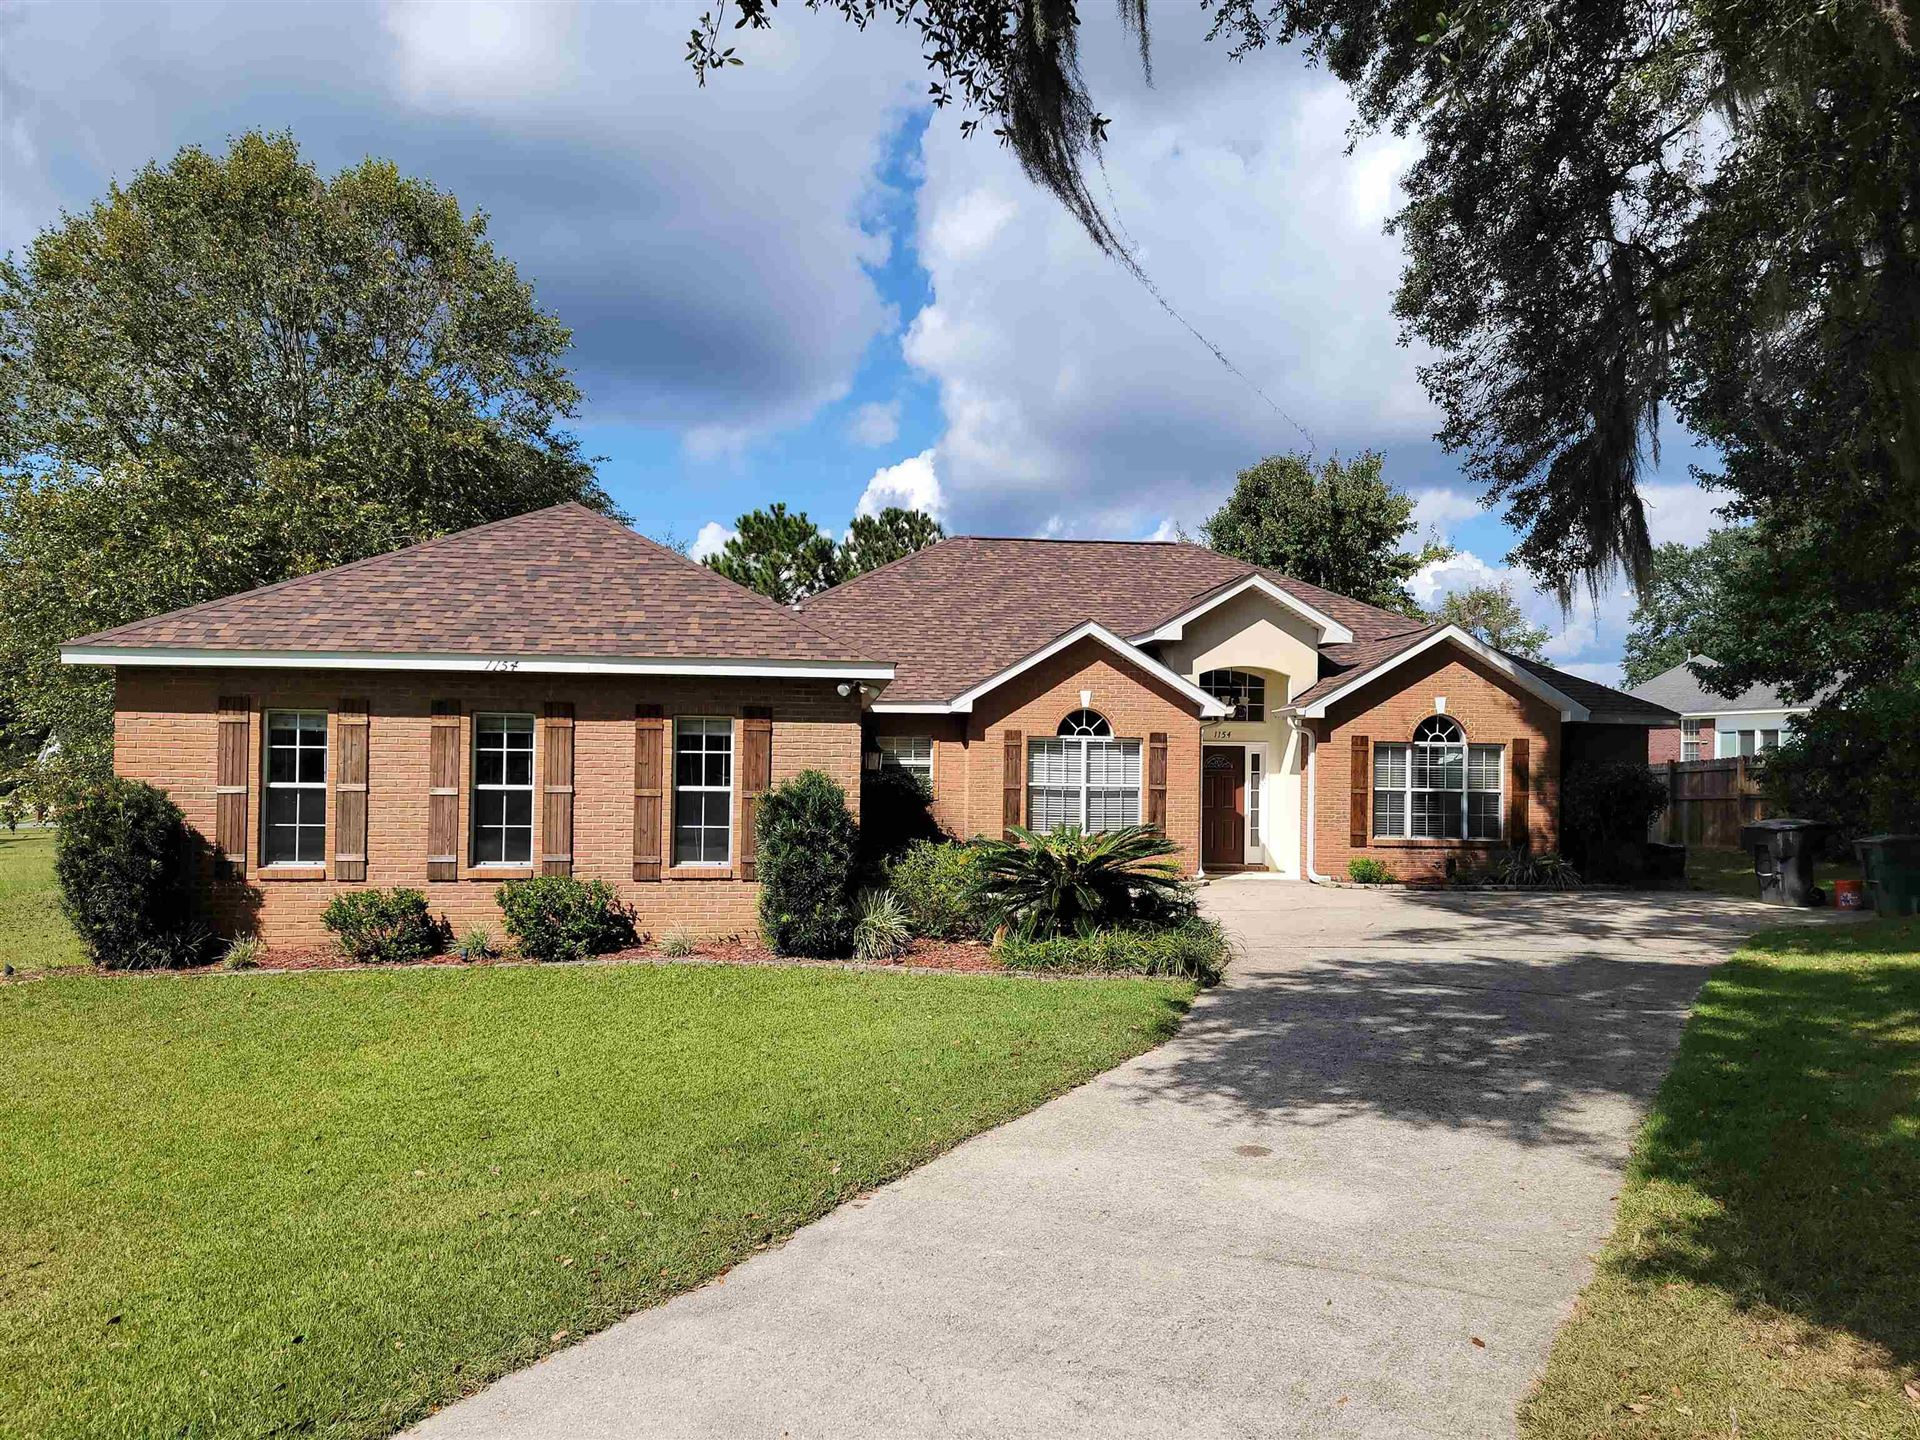 1154 RONDS POINTE Drive, Tallahassee, FL 32312 - MLS#: 338691